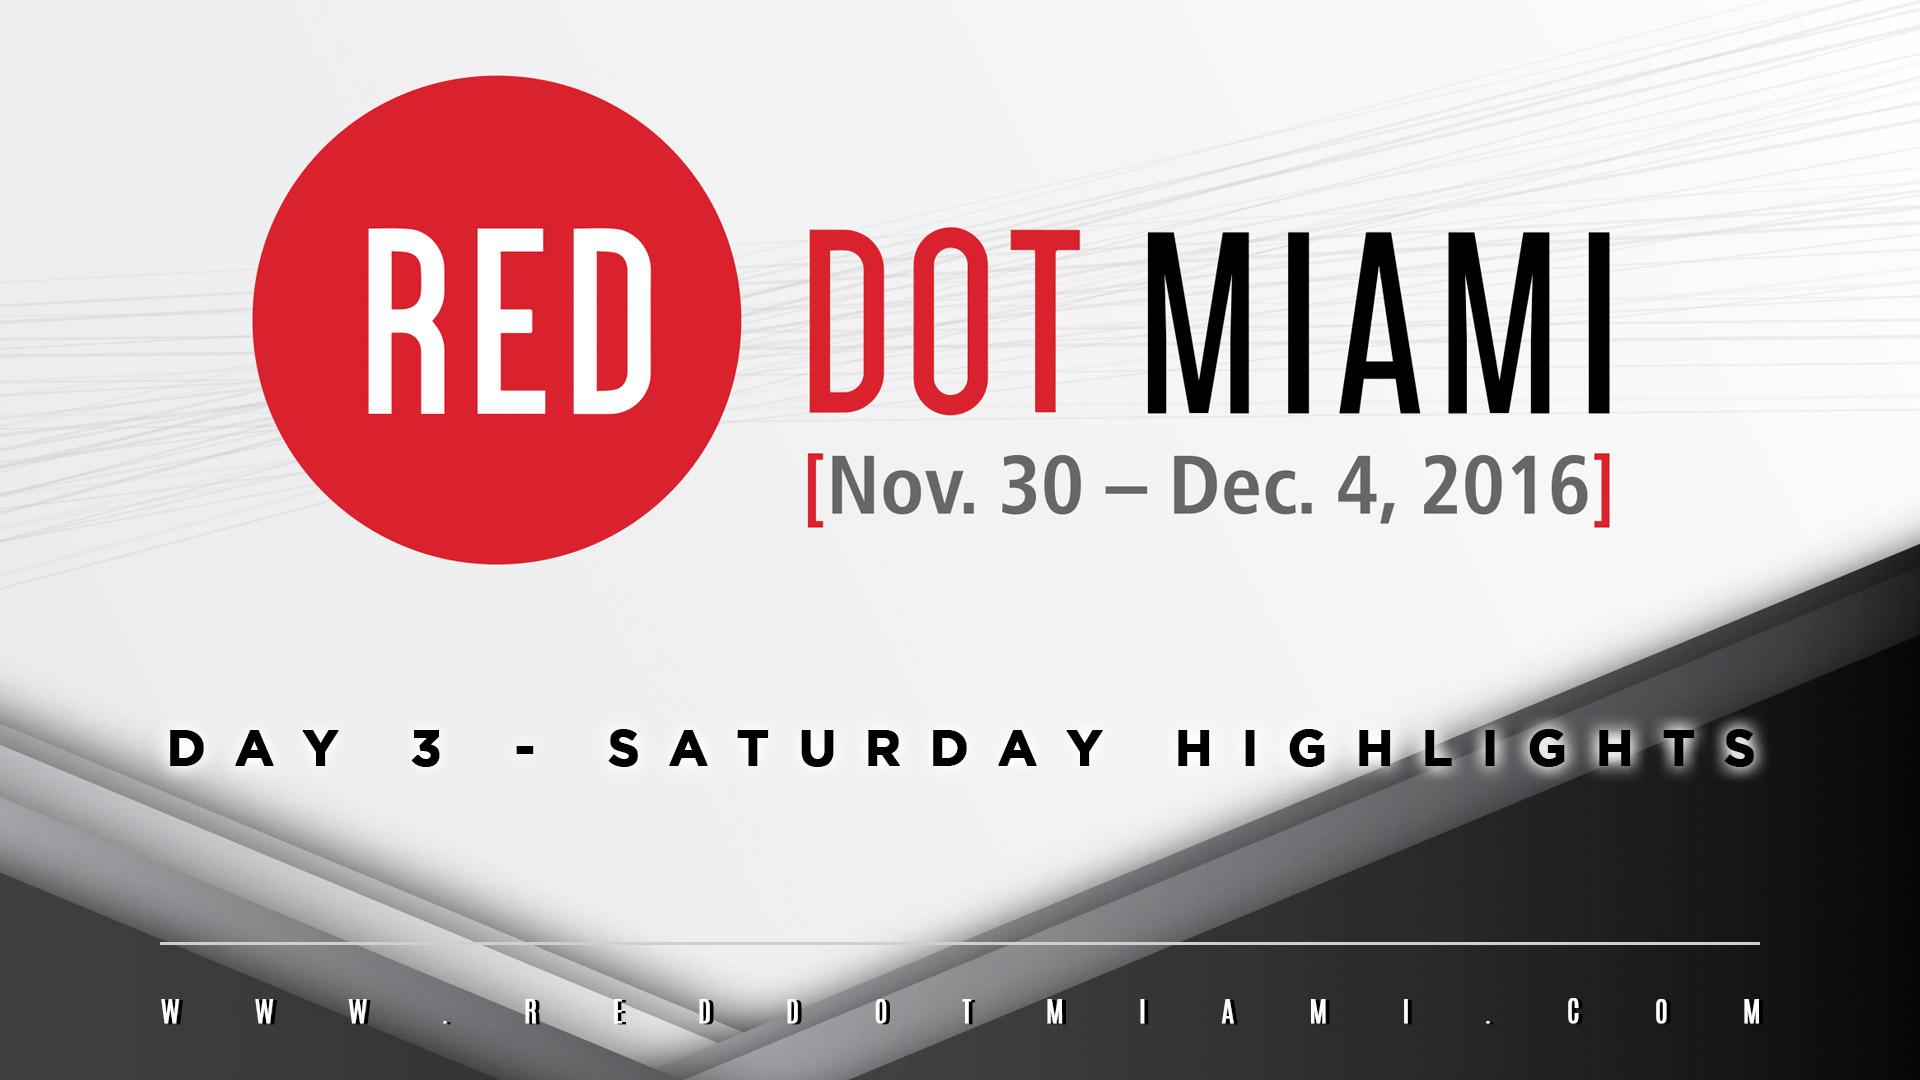 Red Dot Miami 2016 - Saturday Highlights